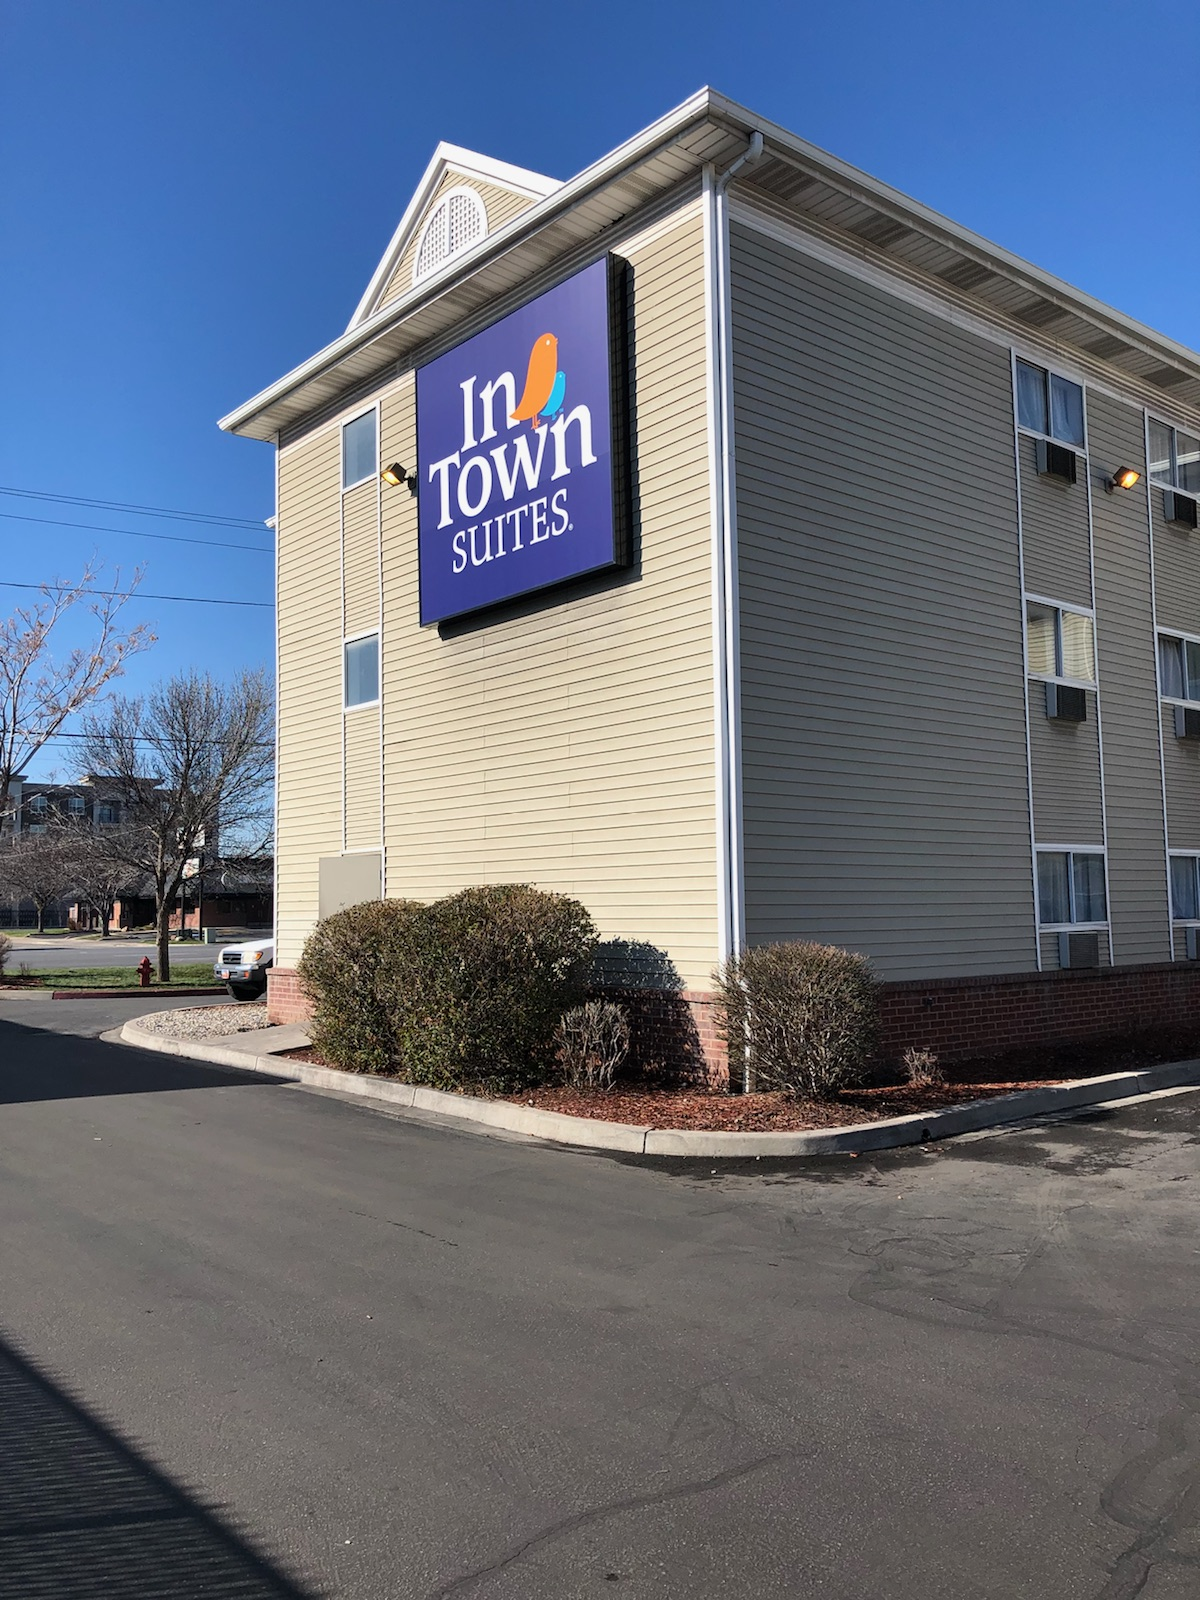 InTown Suites Extended Stay Salt Lake City UT - South